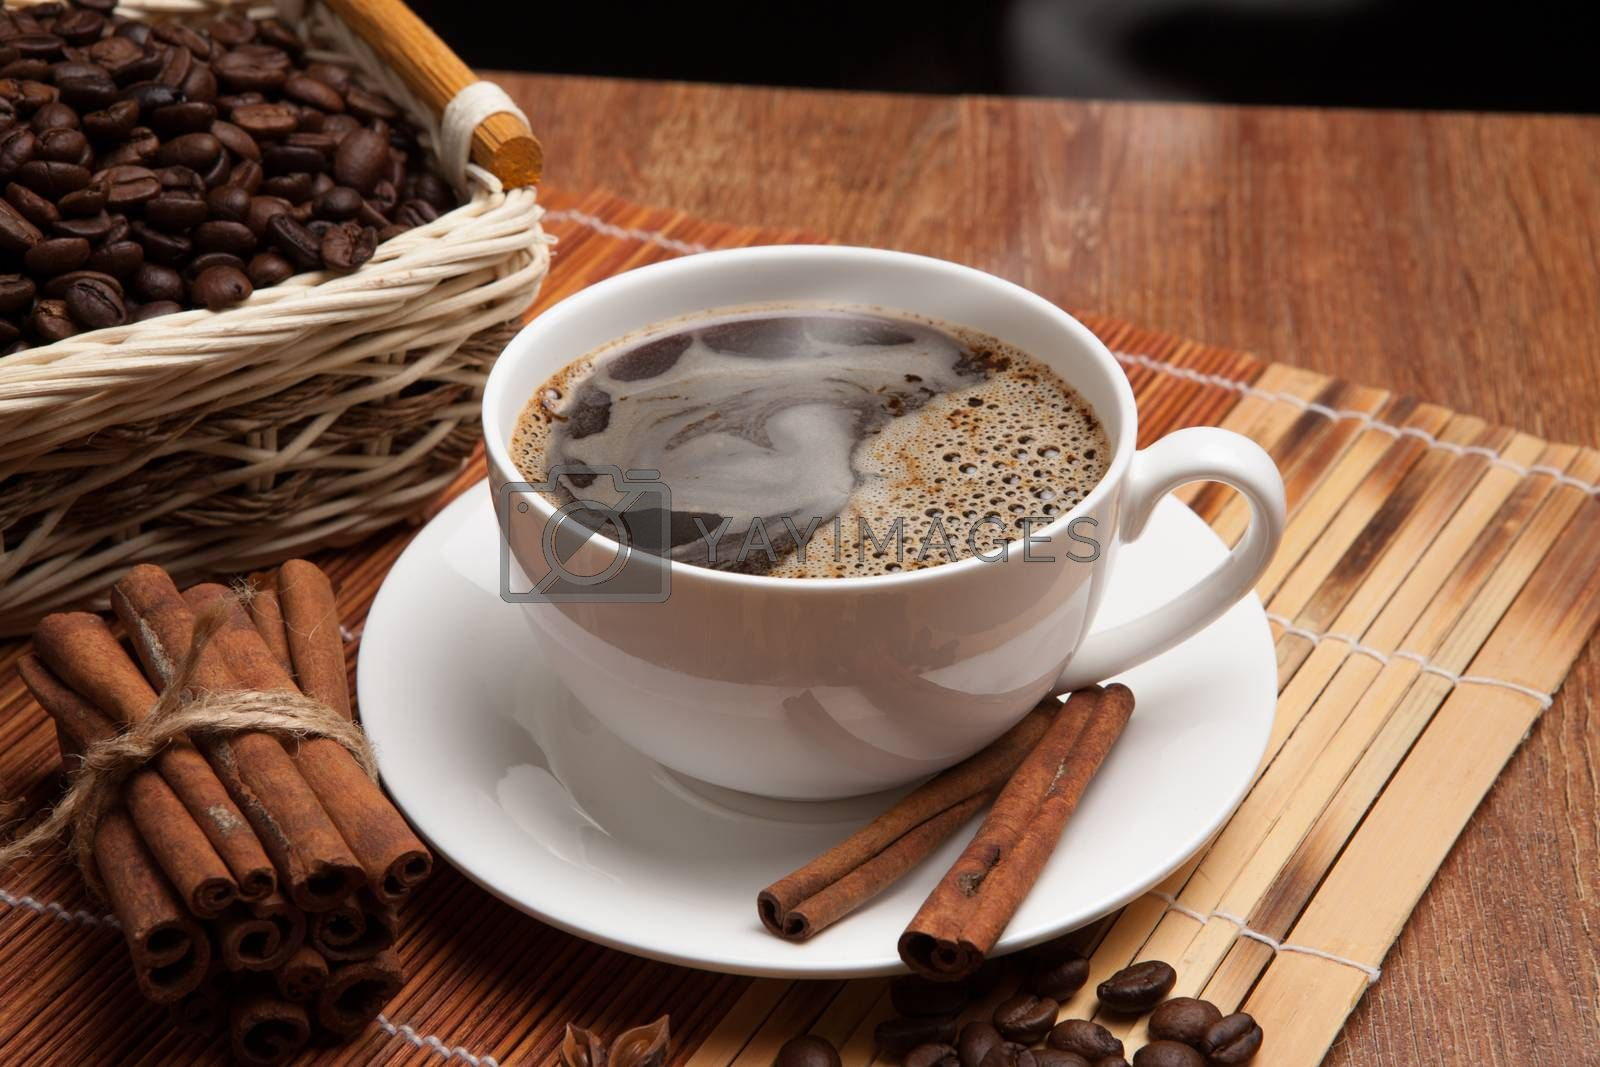 Royalty free image of coffee sill life with cup of coffee by mizar_21984